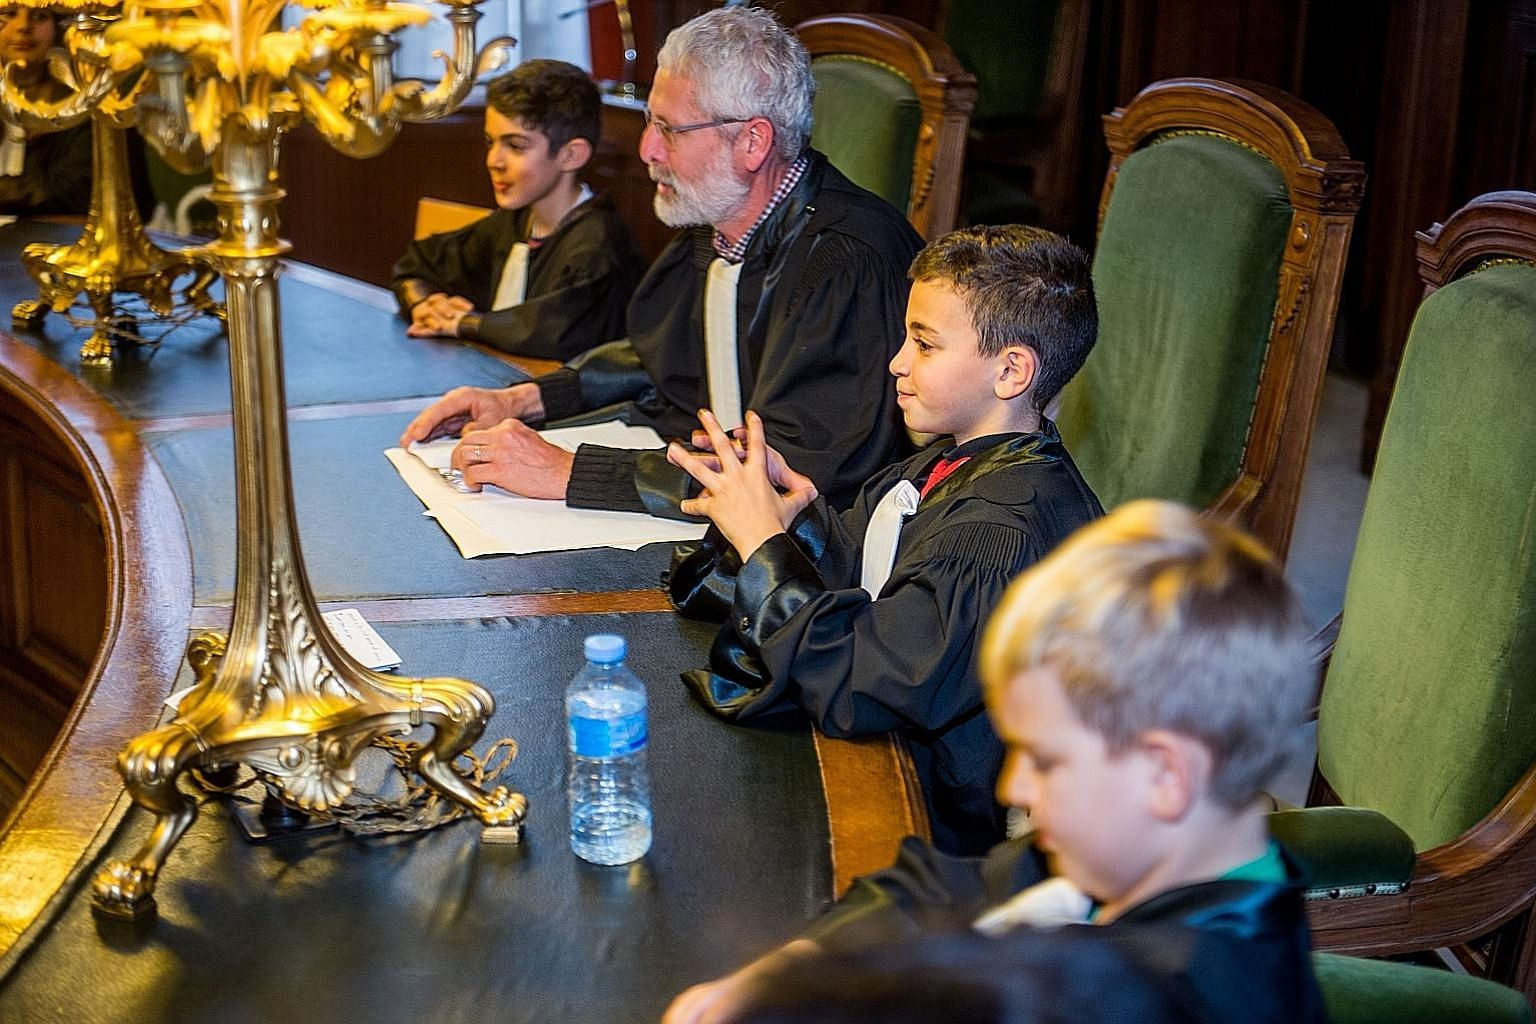 Tada gives children from disadvantaged neighbourhoods in Brussels the chance to interact with professionals who introduce them to their trade, be it law, medicine or other disciplines.